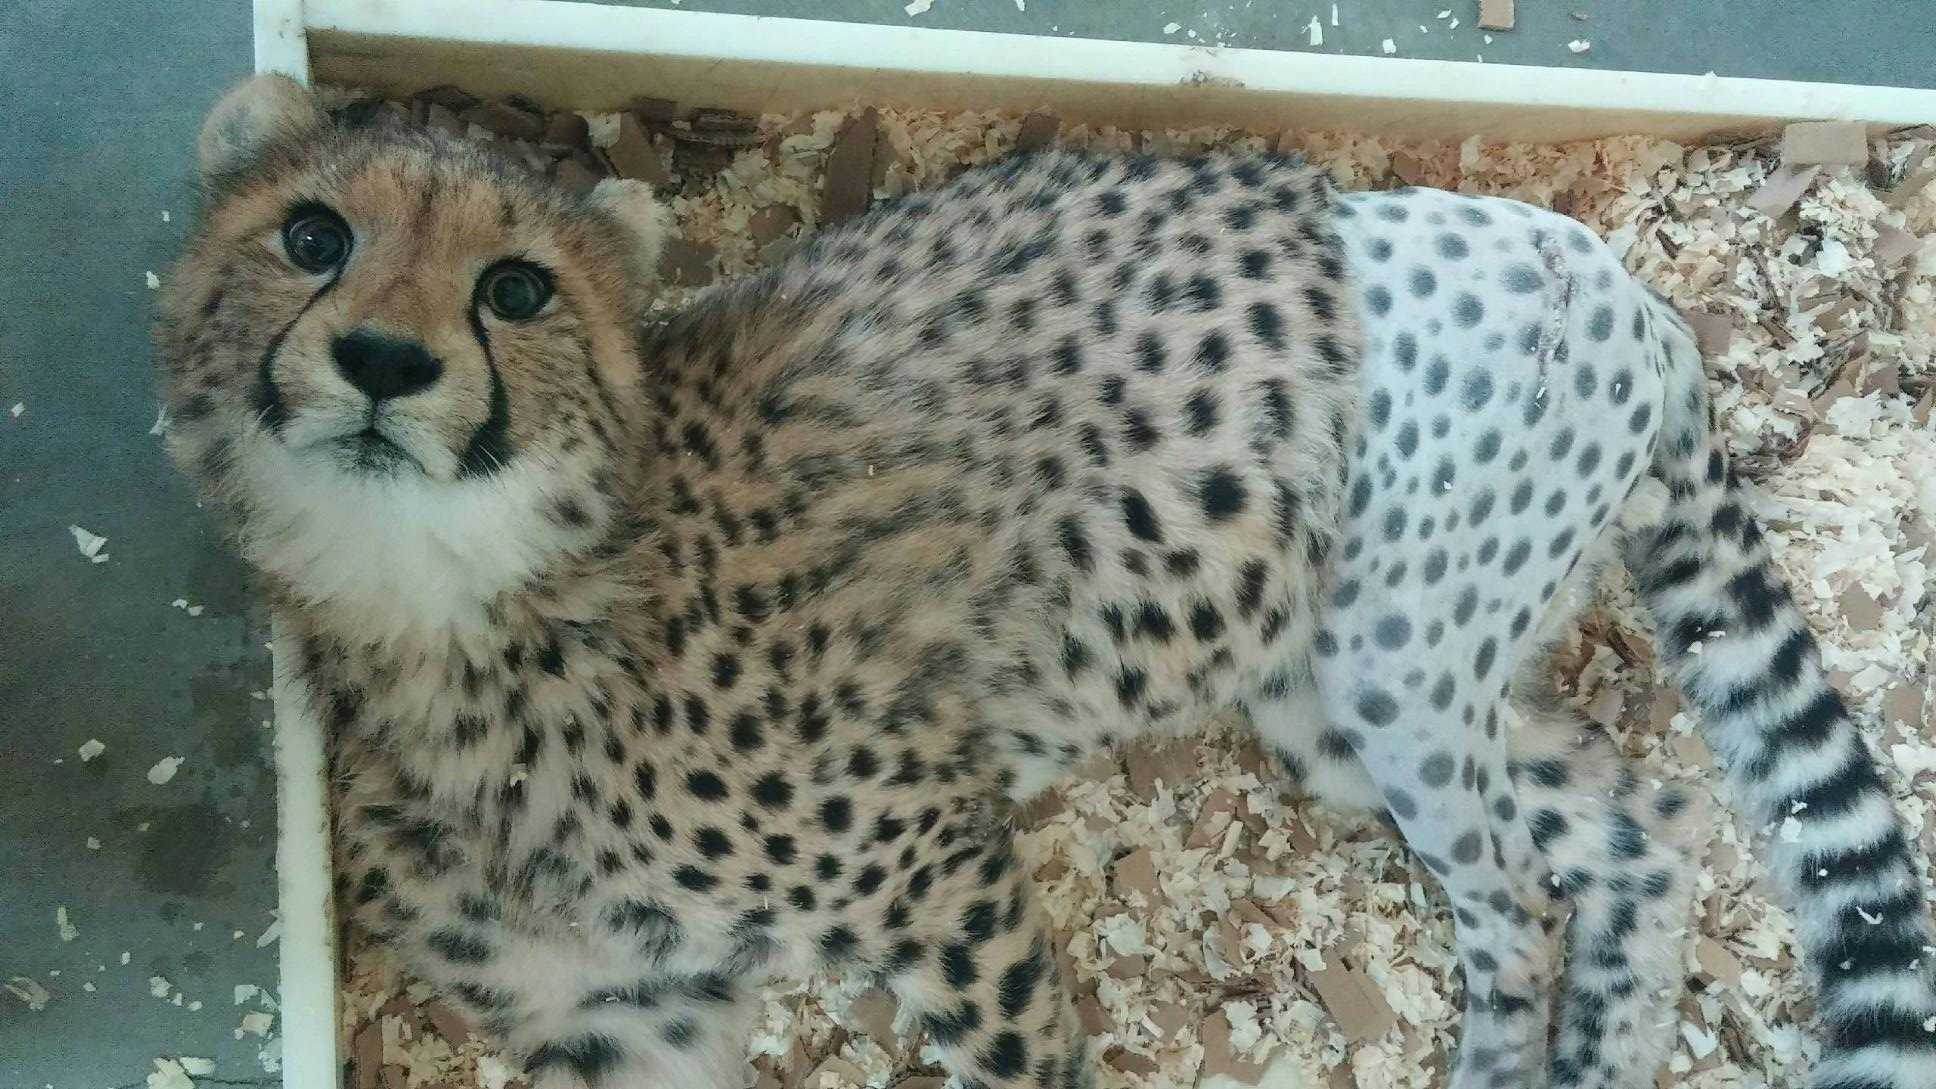 ​Redd, the Cincinnati Zoo's cheetah cub, was shaved for hip surgery recently.